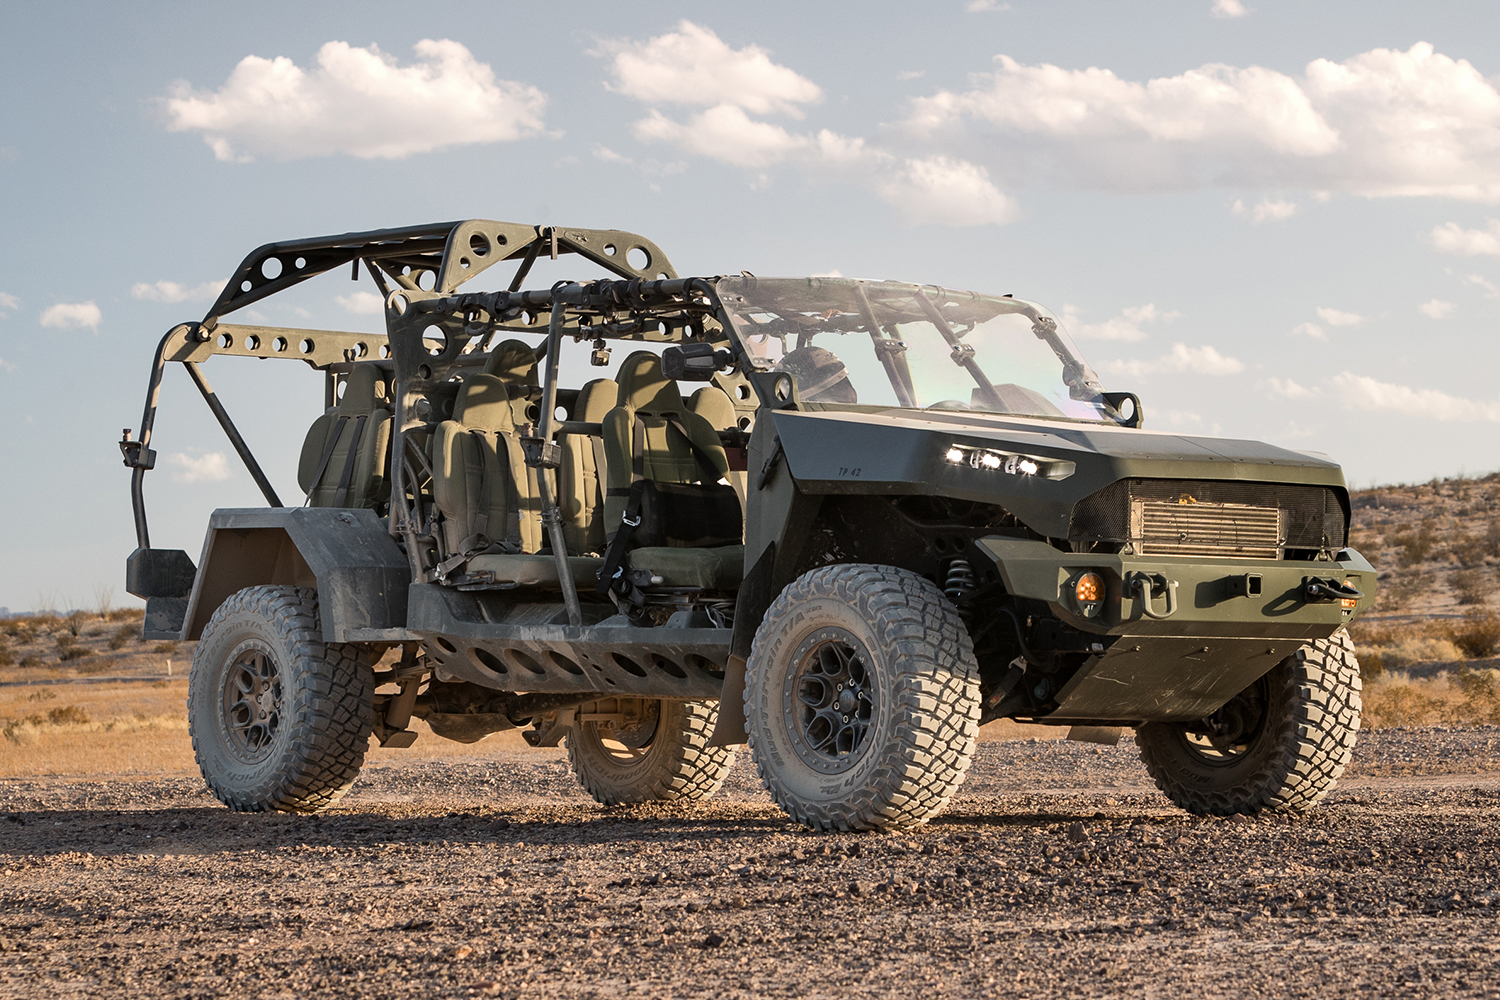 The GM Defense Infantry Squad Vehicle based on the Chevy Colorado ZR2 truck